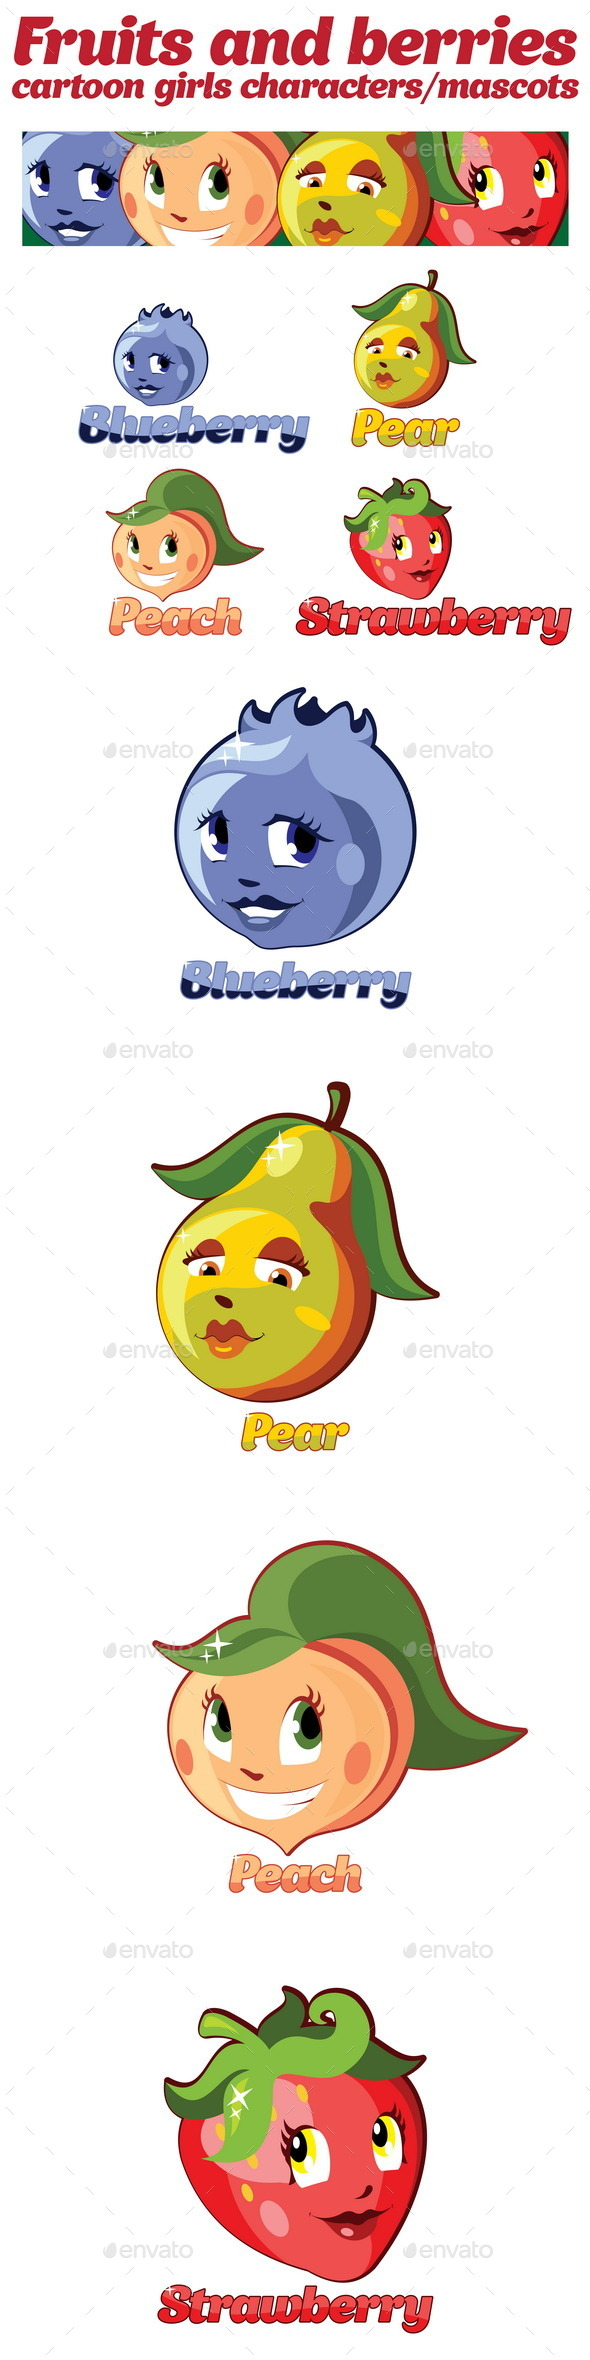 Fruits and Berries Cartoon Characters Mascots